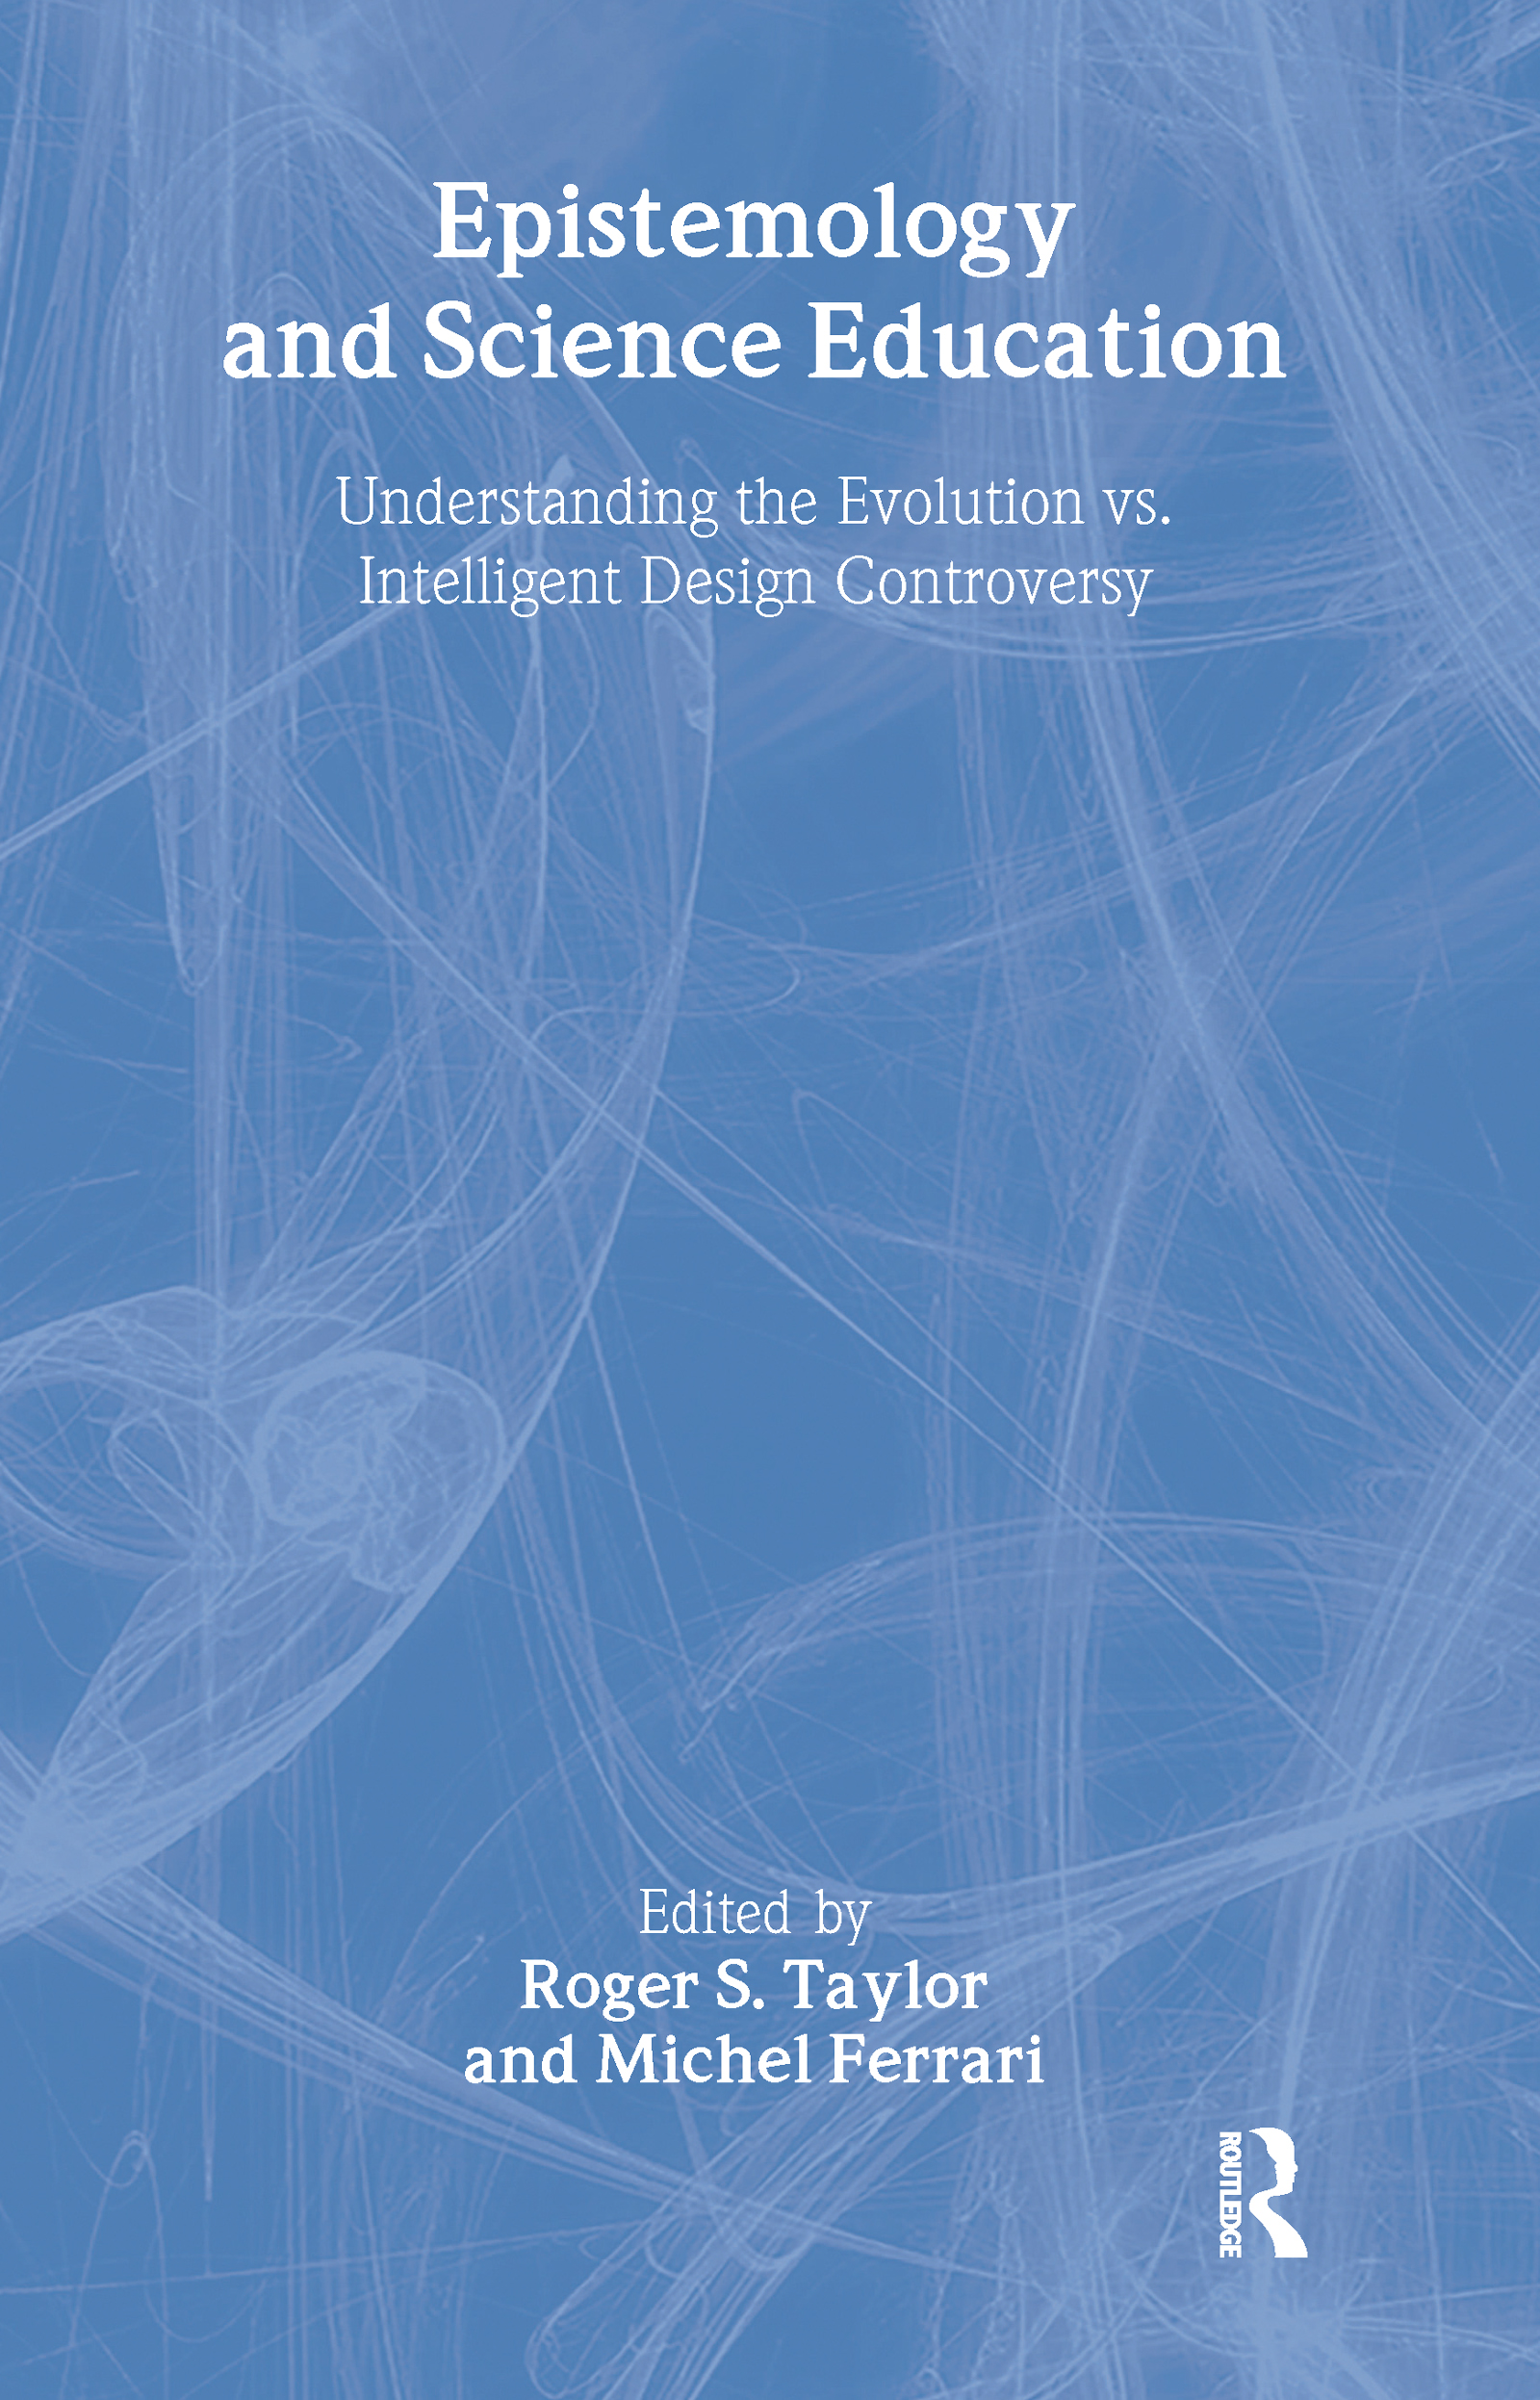 Epistemology and Science Education